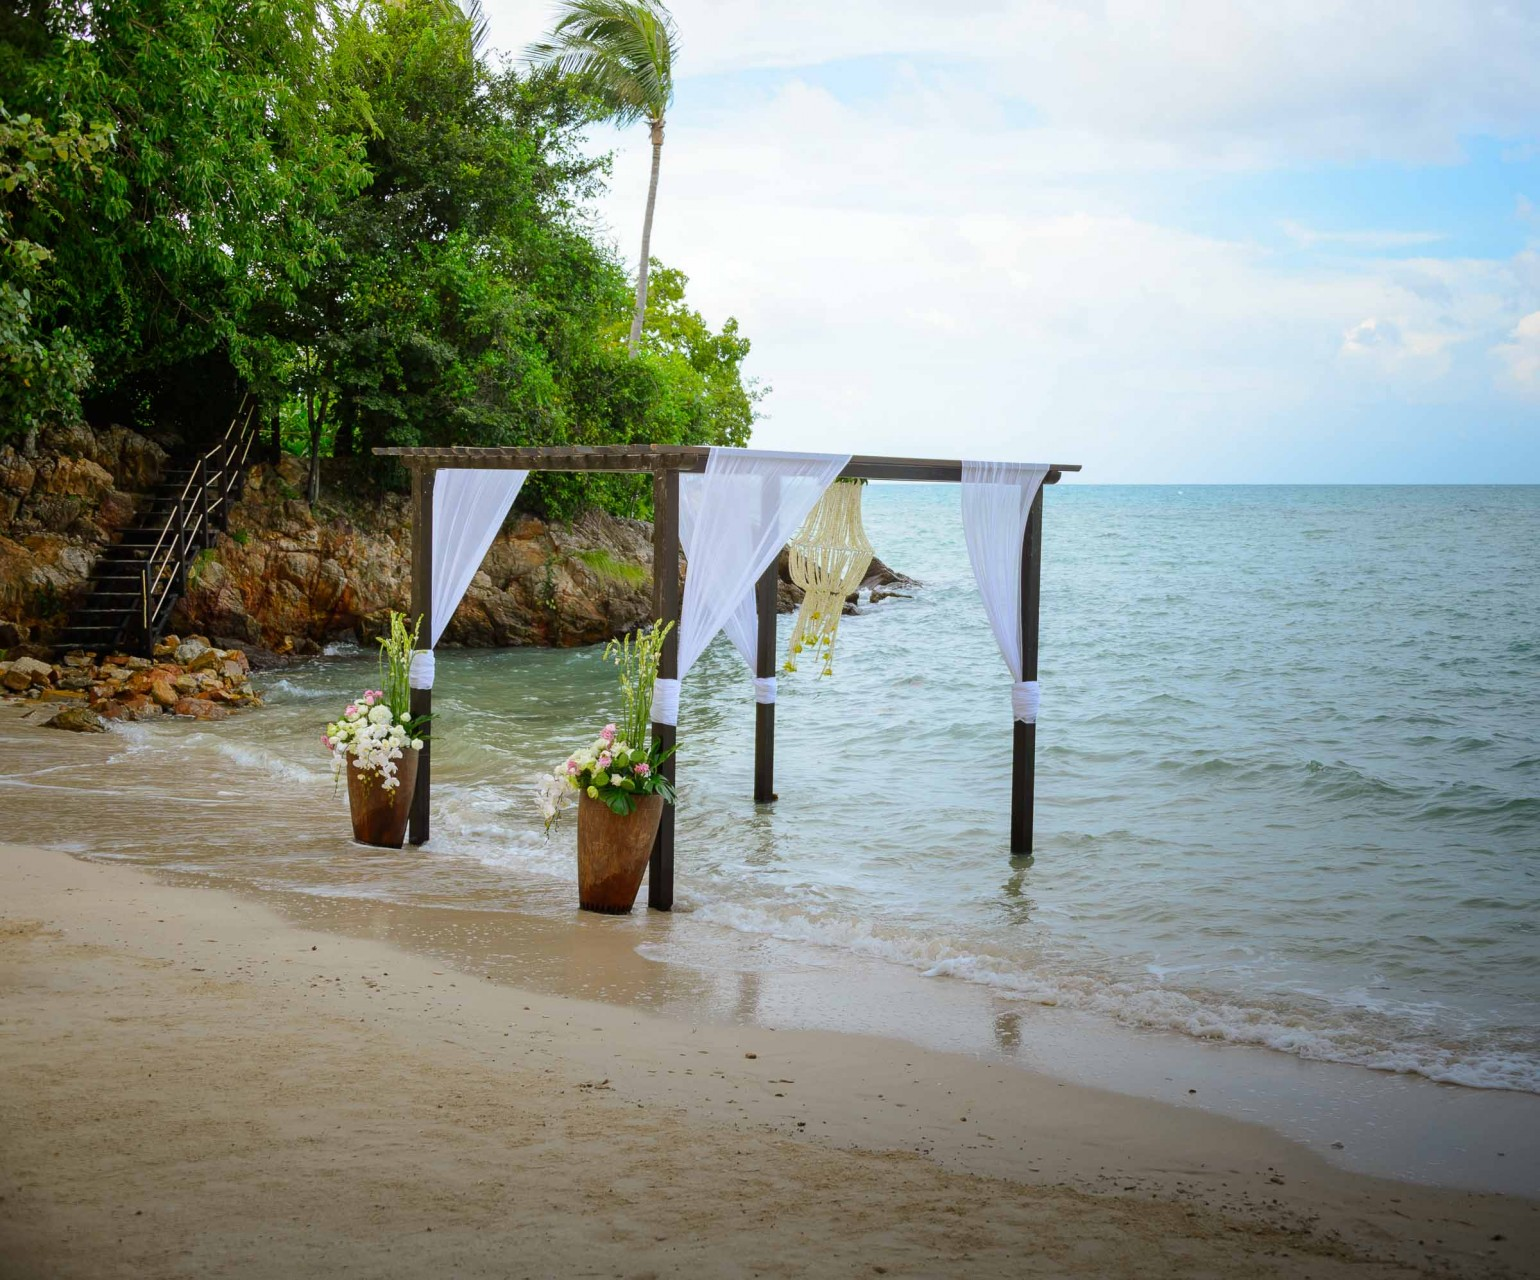 Destination Wedding Photographer Four Seasons koh samui | Destination Wedding Photography